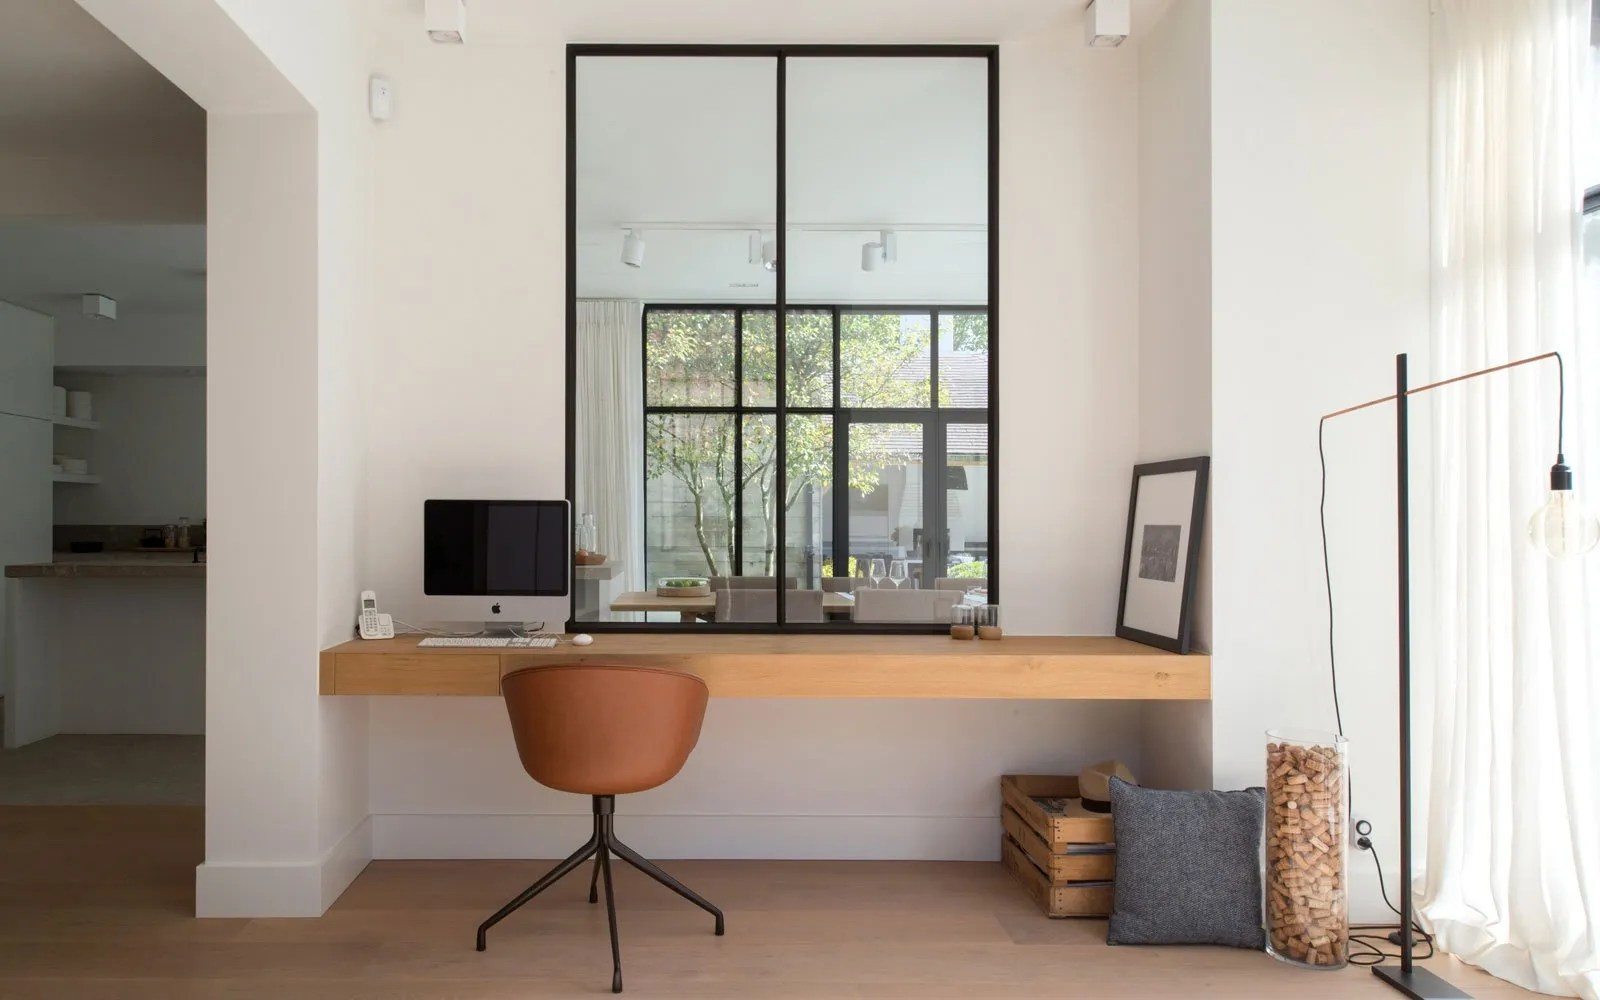 Kantoor Thuis Interieur Home Office Inspiratie Sarah Watts The Art Of Living Be